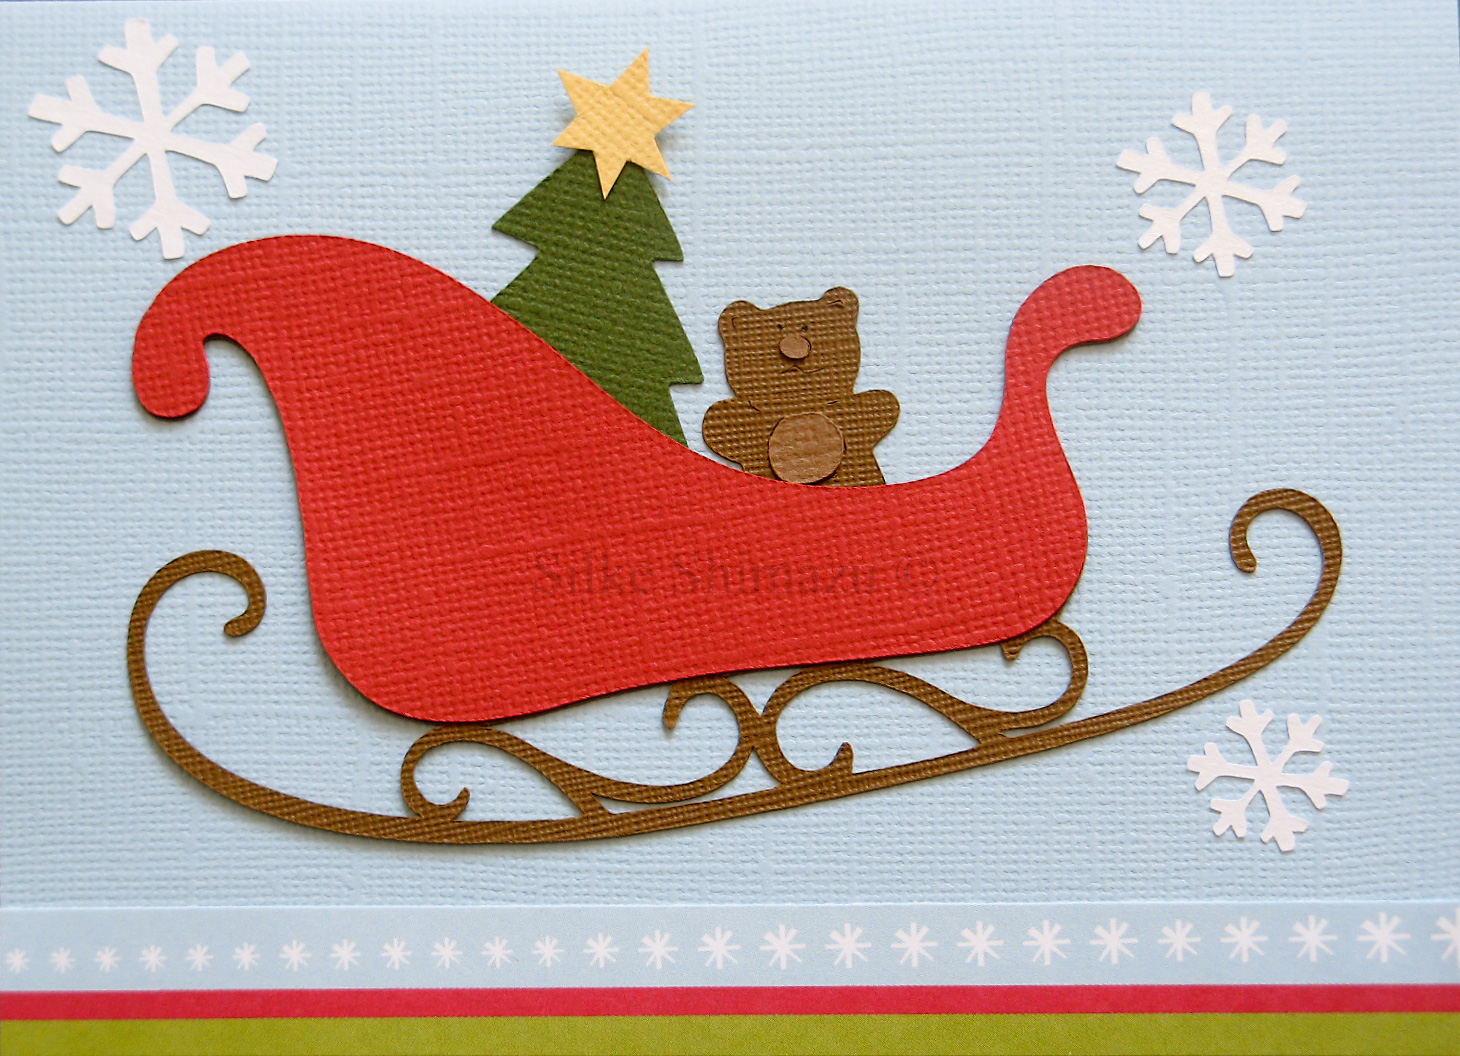 Sleigh Christmas Opposites attract cricut cartridge get inky with ...